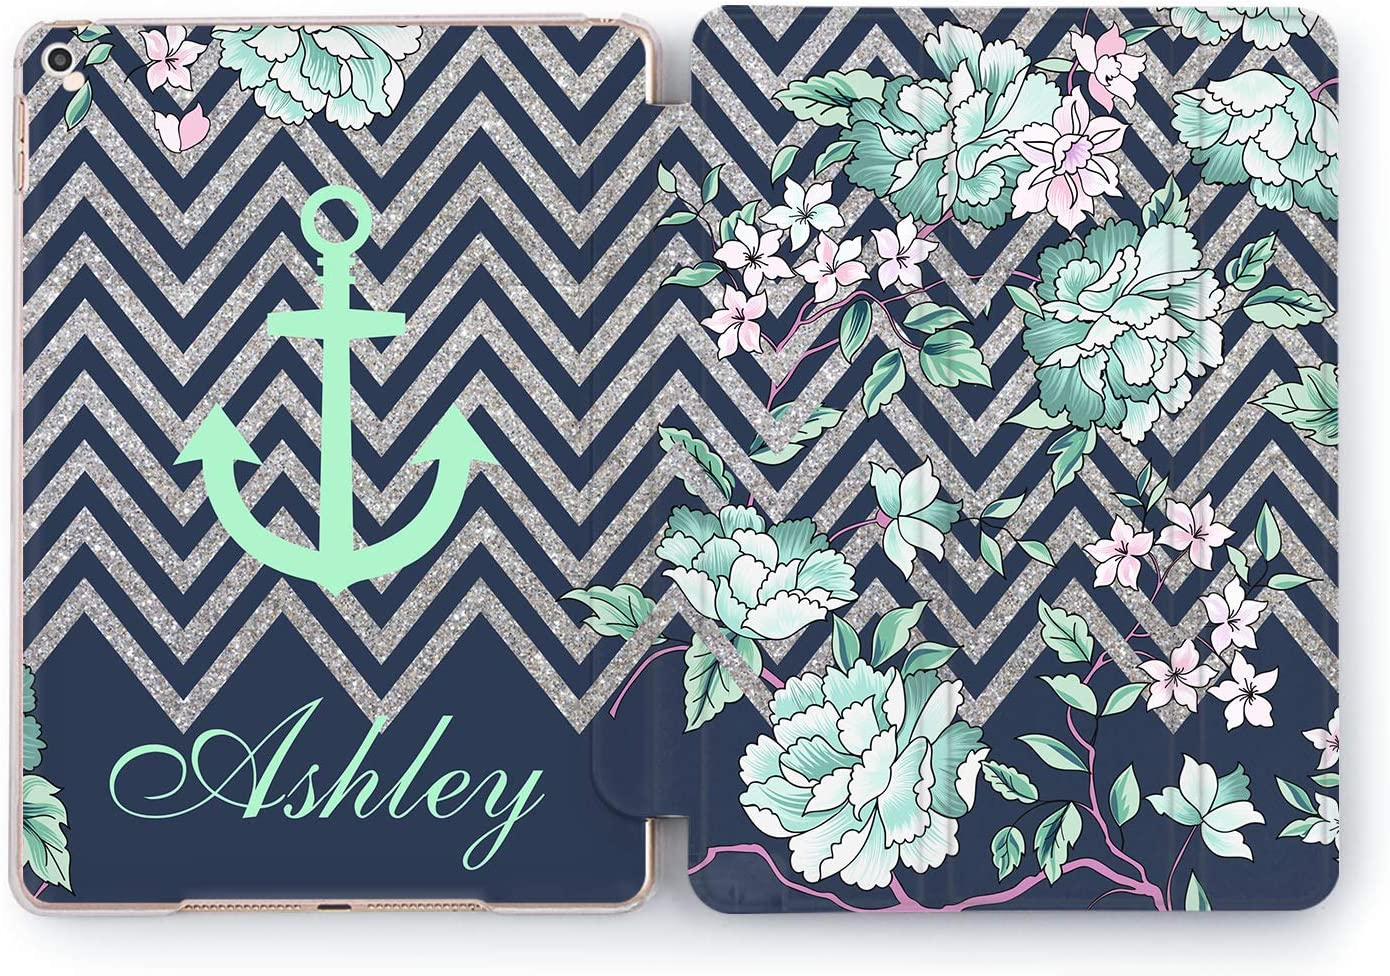 Wonder Wild Case Compatible with Apple iPad Custom Mini 1 2 3 4 Air 2 Pro 10.5 12.9 11 10.2 9.7 inch 5th 6th Generation Cover Personalized Name Succulent Tropical Cactus Silver Stripes Flora Print